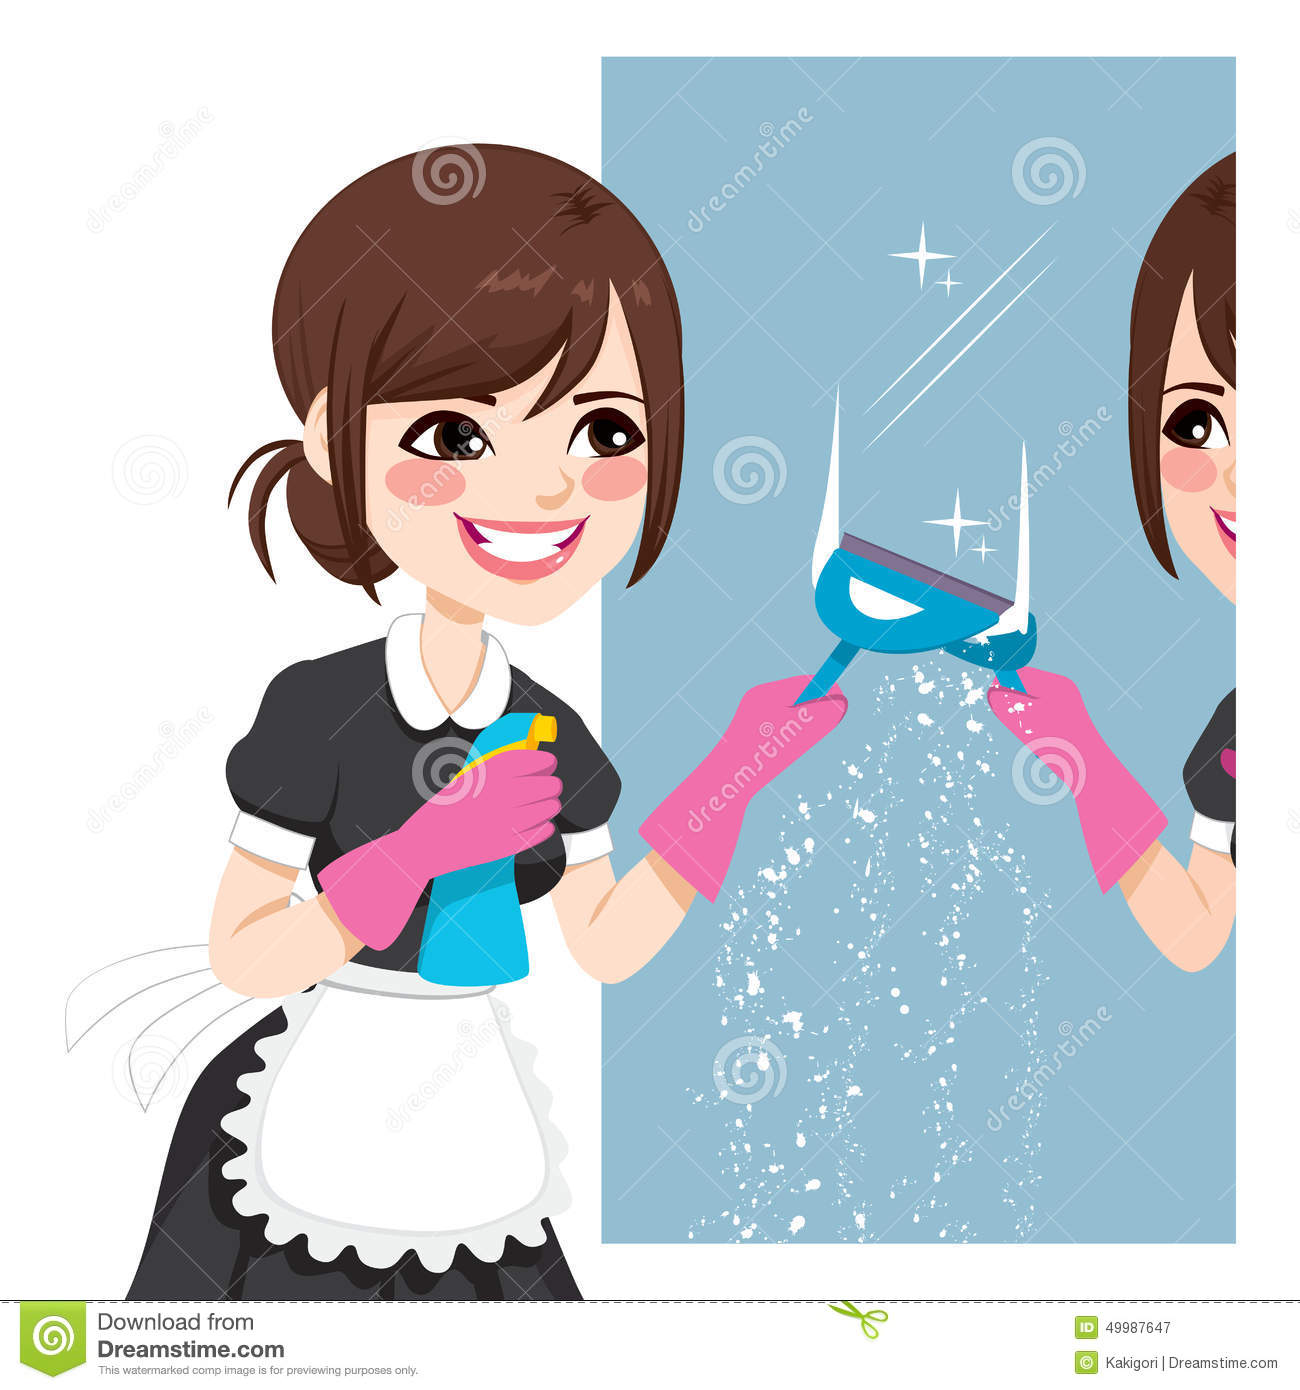 how to clean the mirrors of a preojector